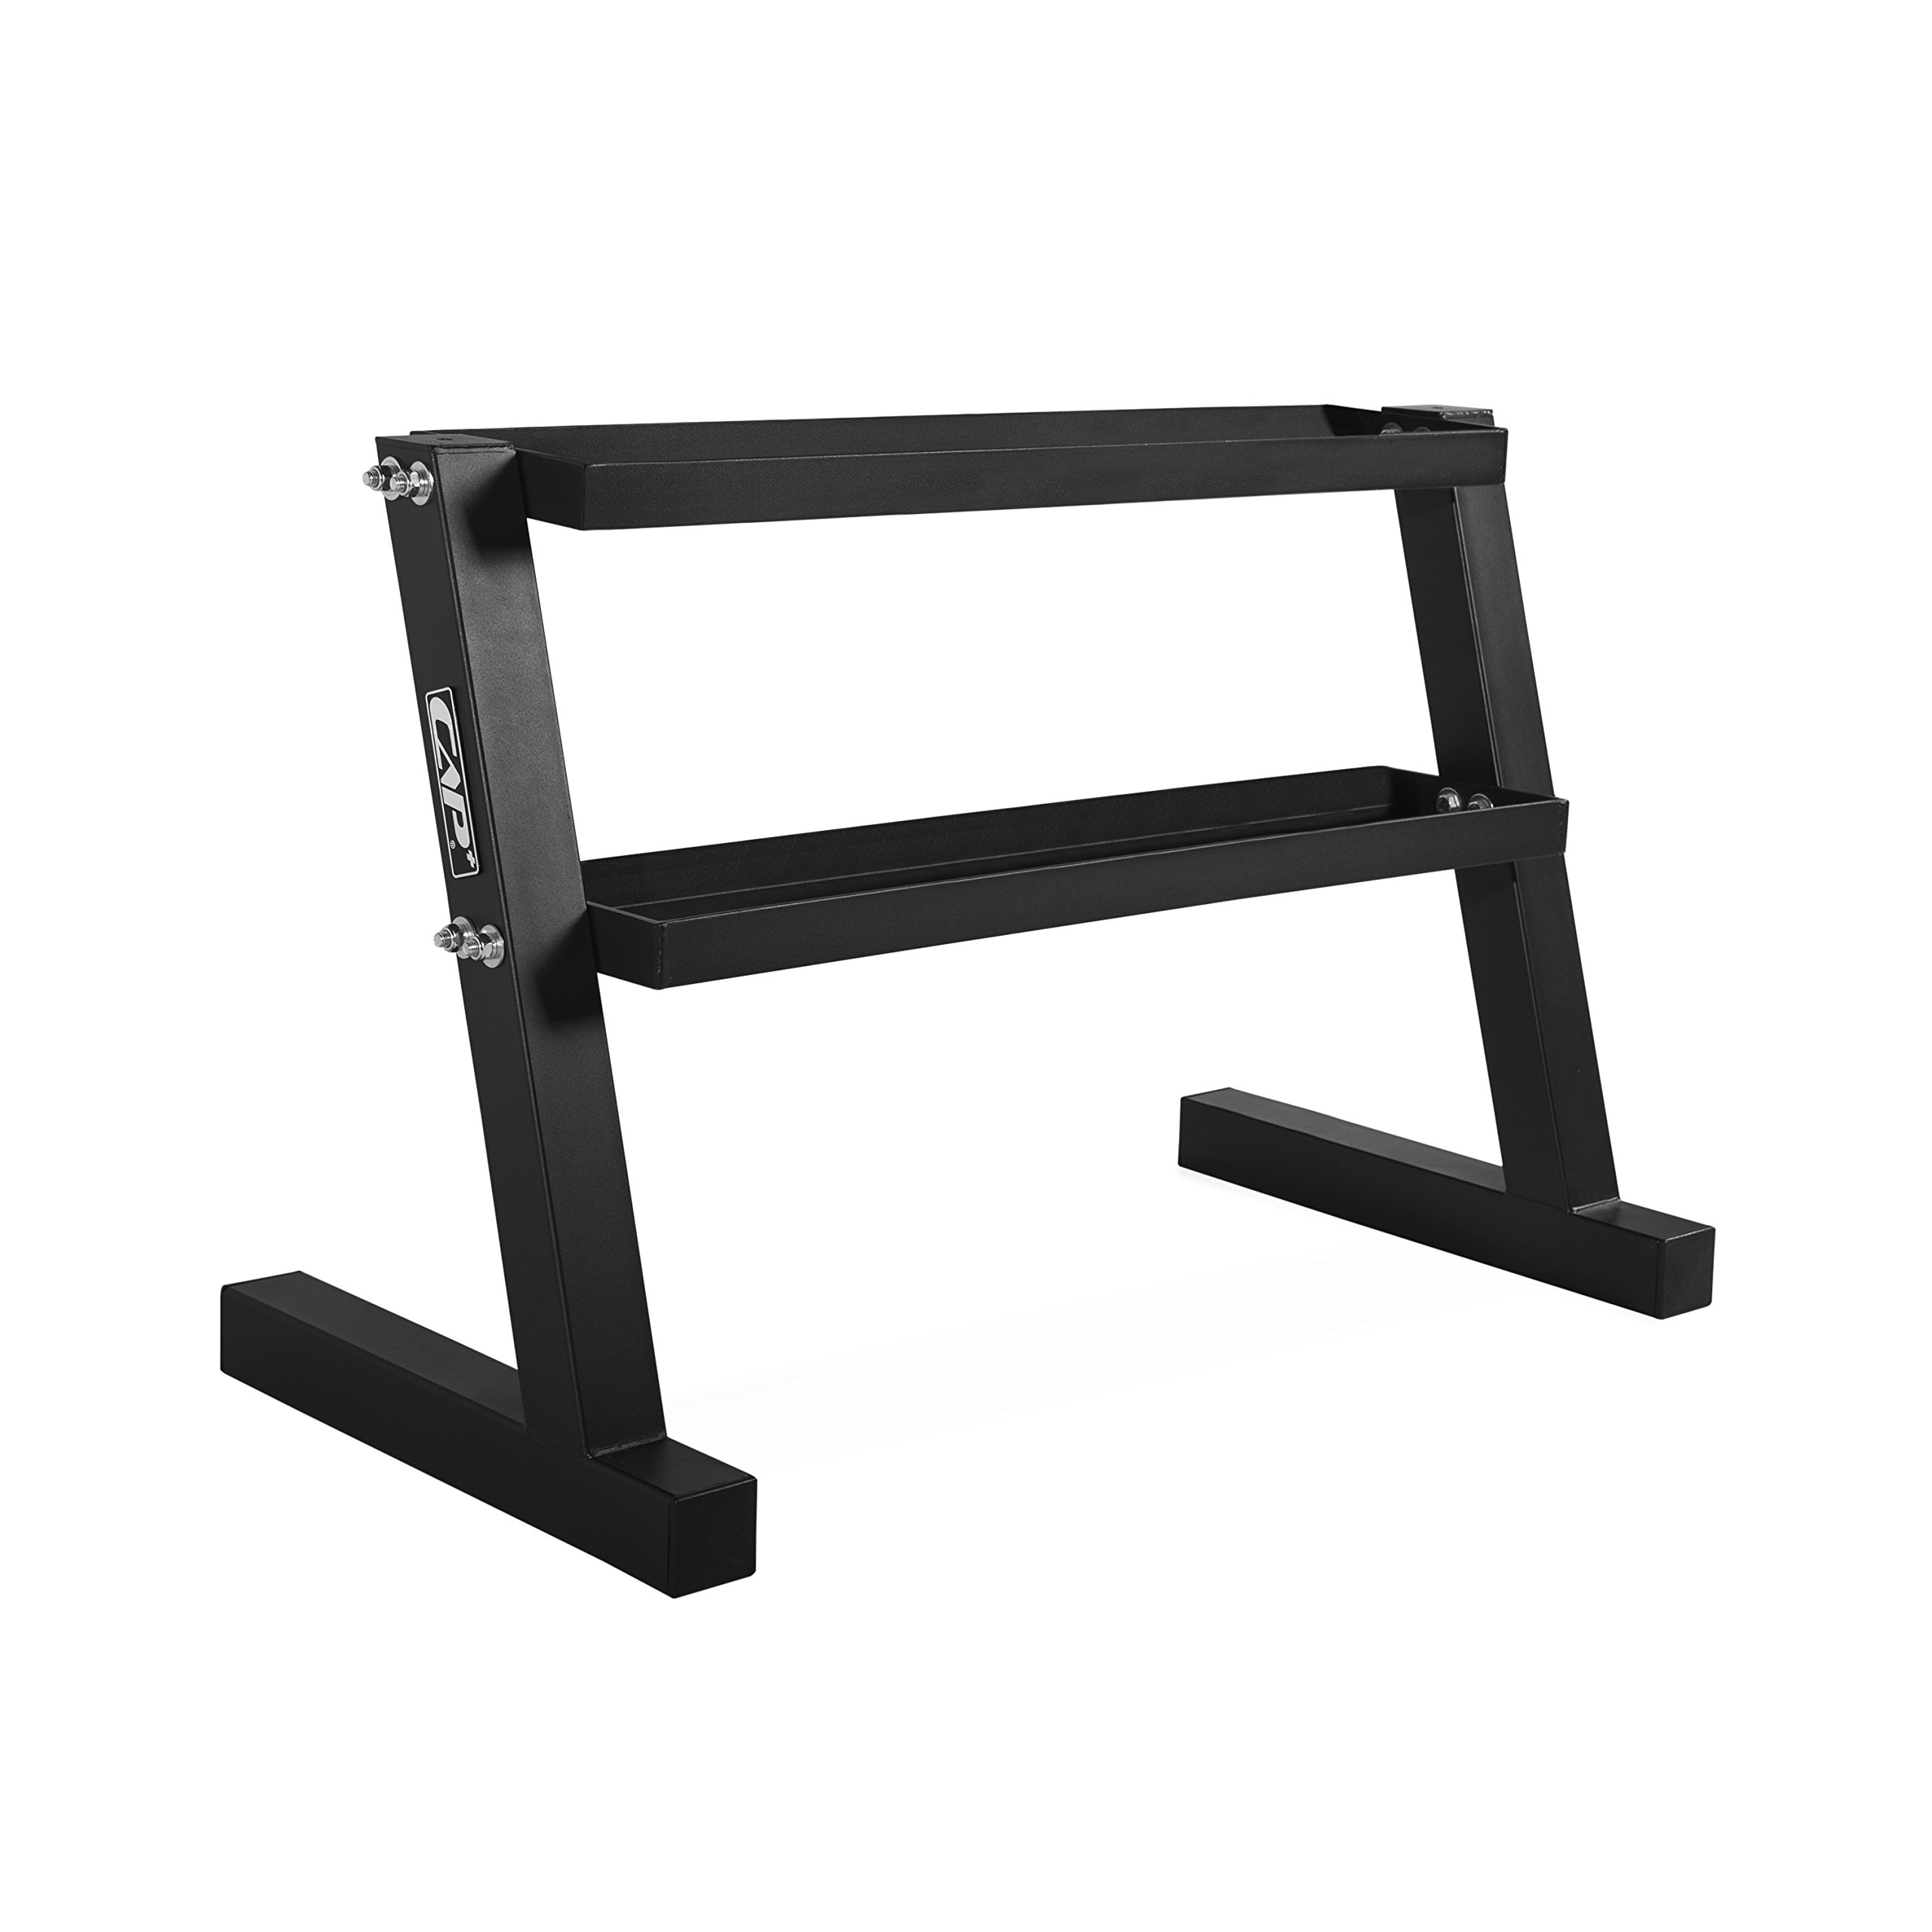 WF Athletic Supply Short Two-Tier Kettlebell Rack